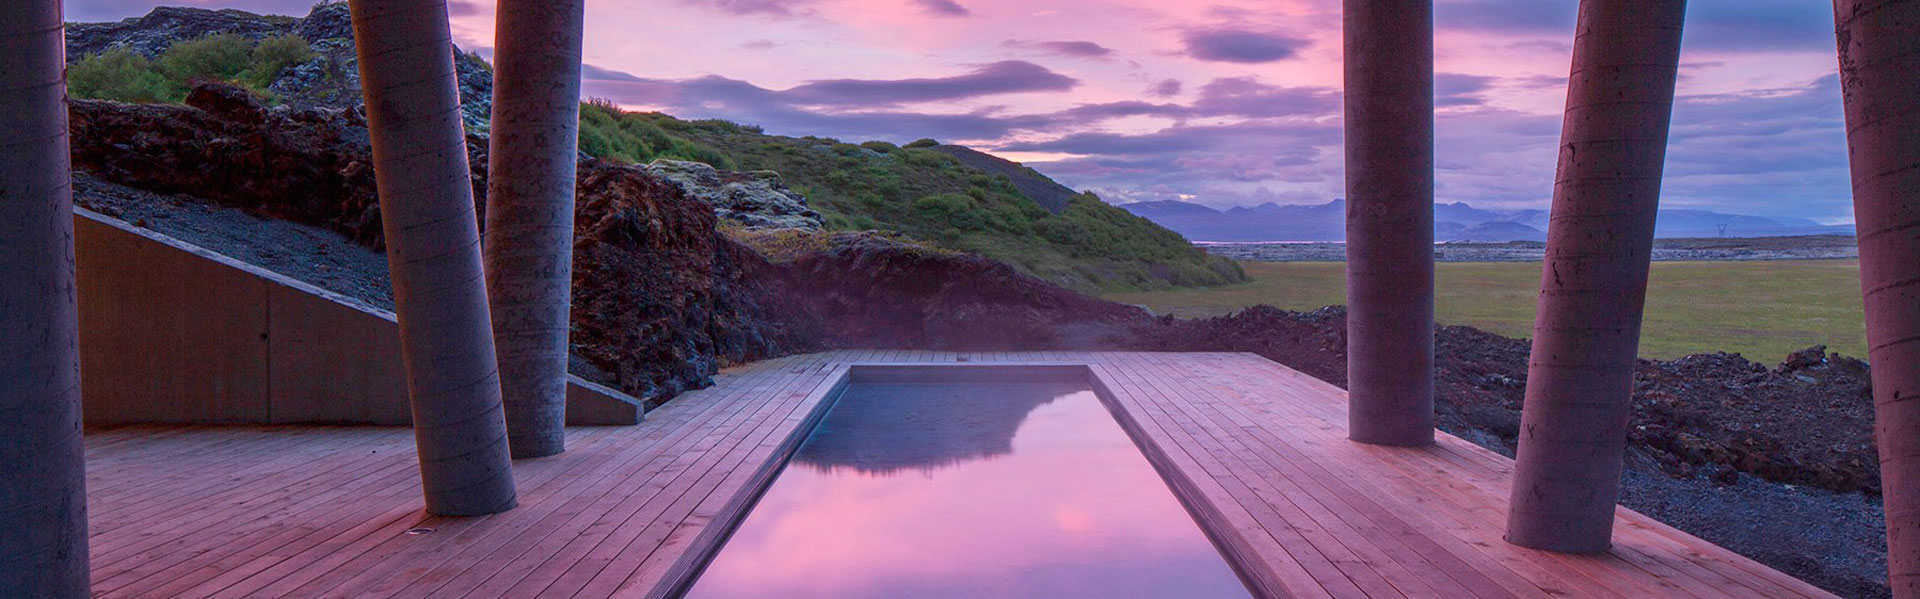 ion-hotel-iceland-spa-thermal